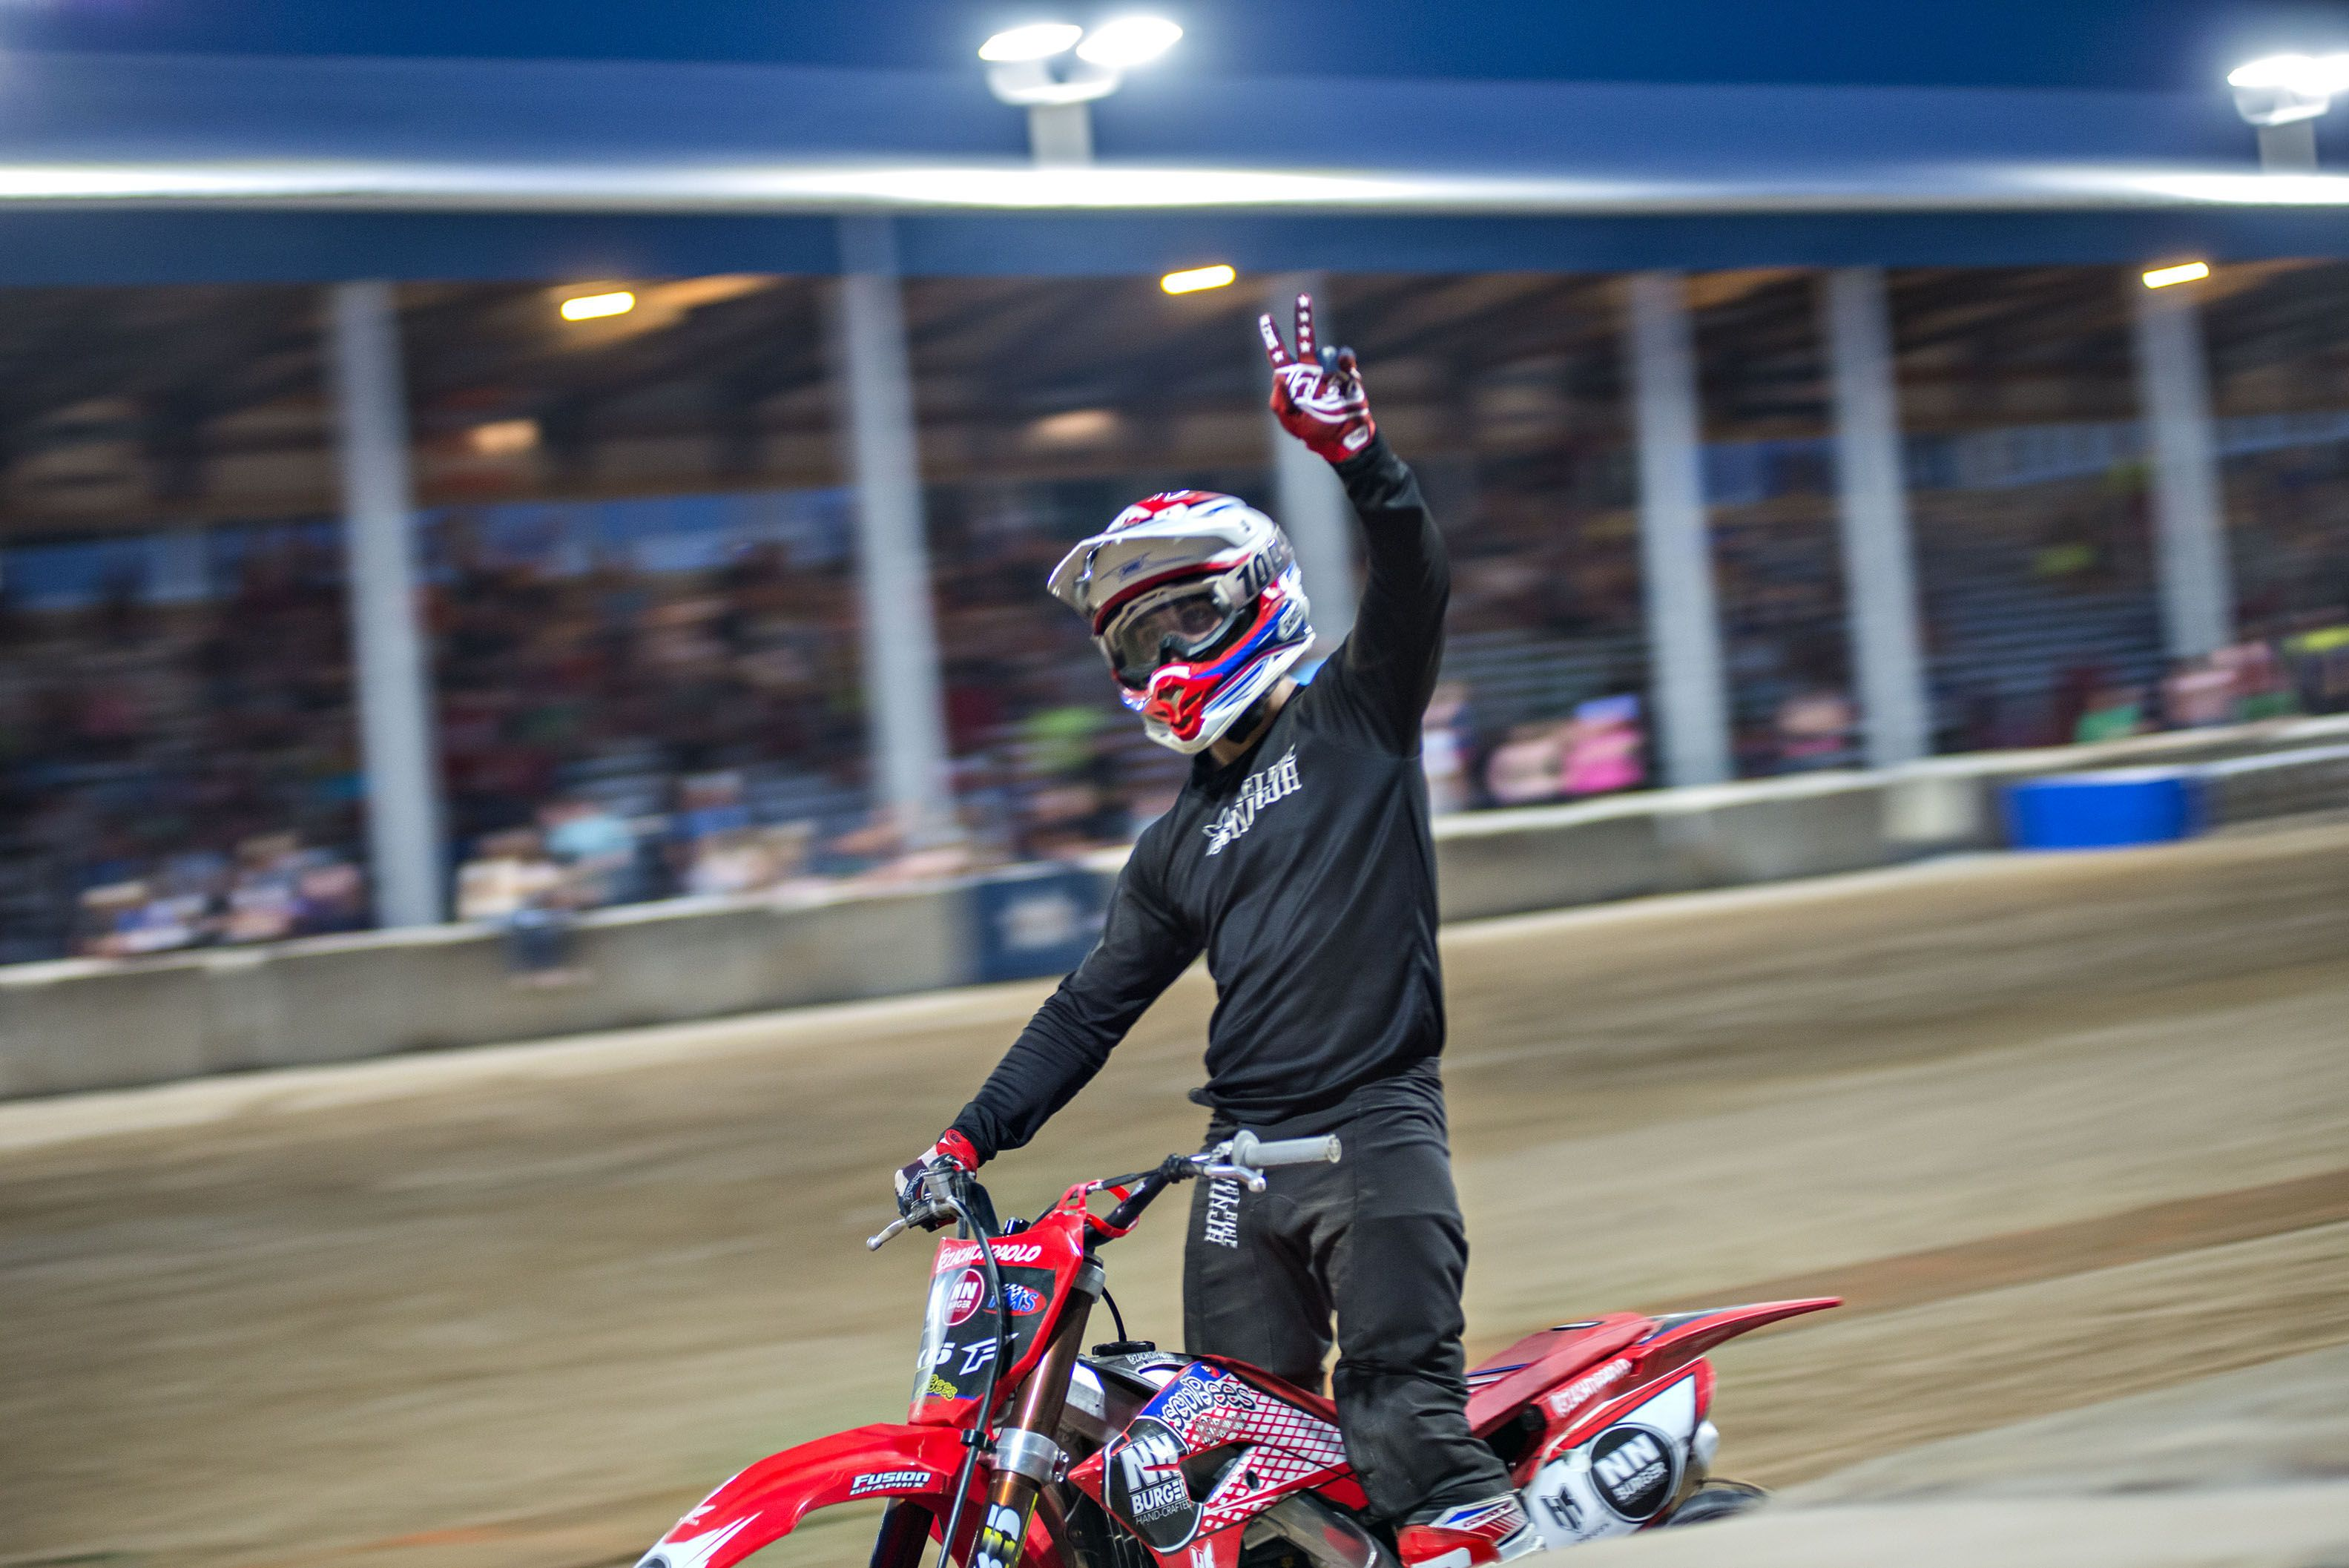 Zach DiPaolo waves to the fans Thursday night. The fans were encouraged to make as much noise to add to the excitement.